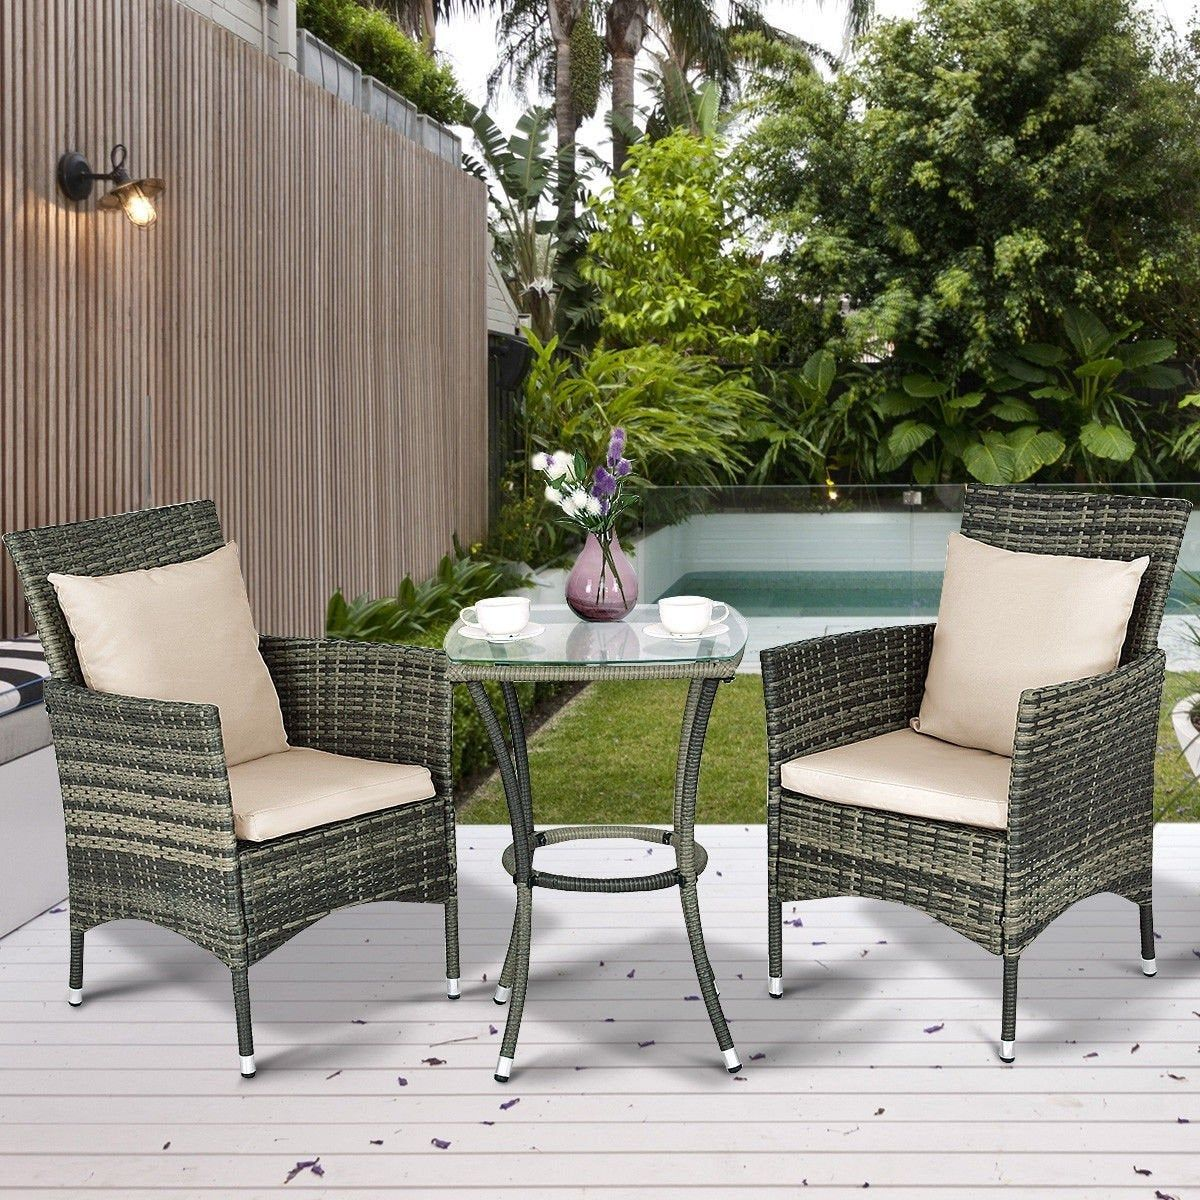 Excited To Share The Latest Addition To My Etsy Shop Patio Outdoor Garden Deck Furniture 3 Diy Patio Furniture Modern Outdoor Furniture Rattan Furniture Set